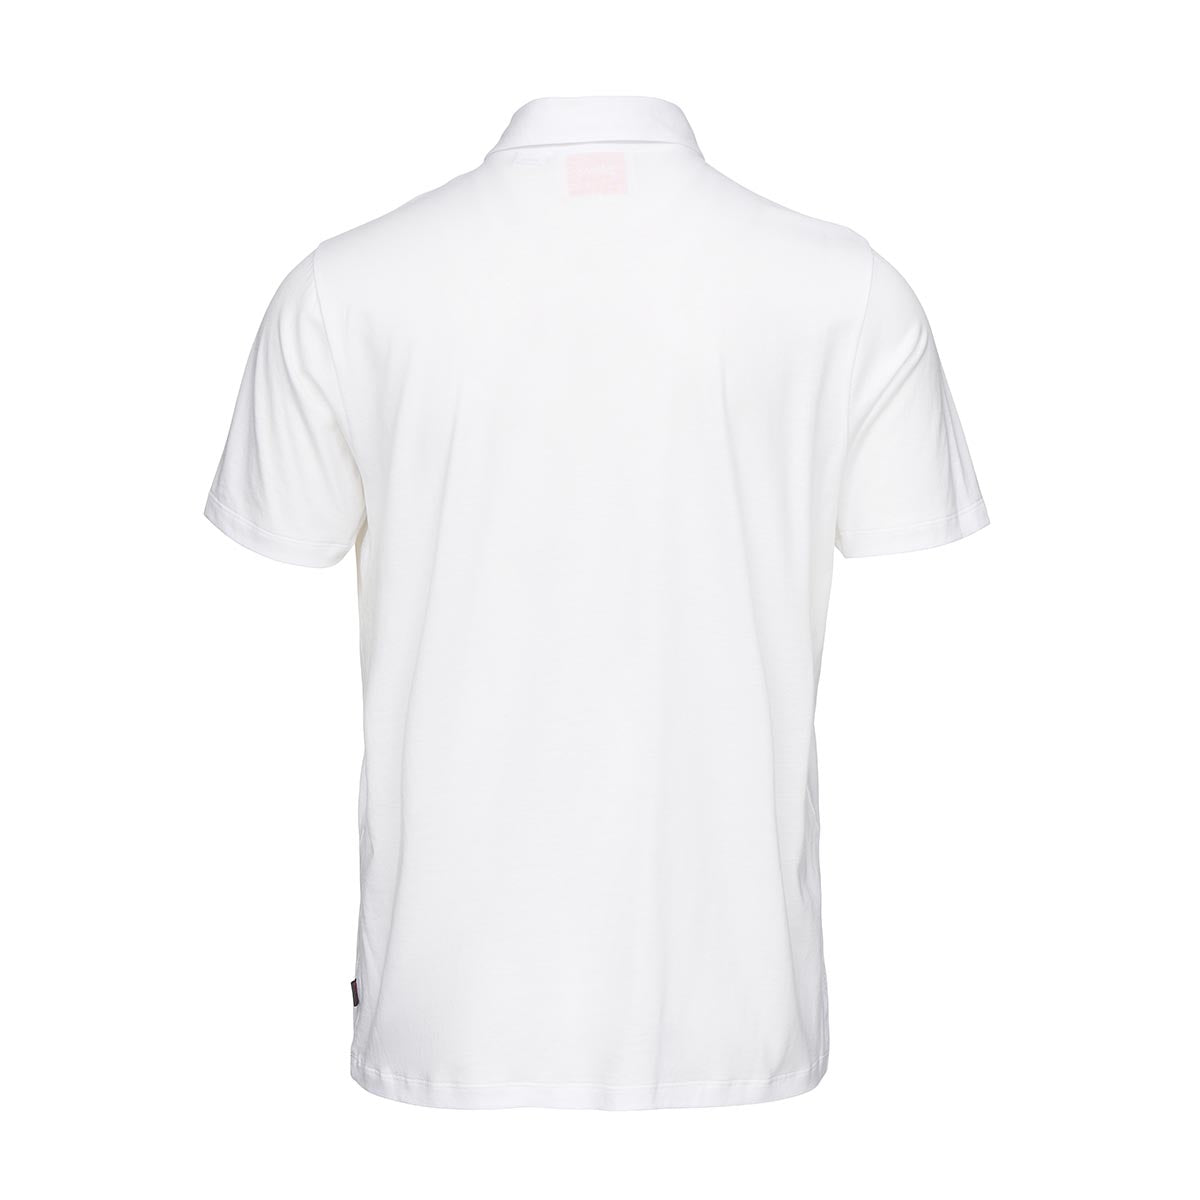 Breeze Hoddevik Polo T-Shirt - background::white,variant::White